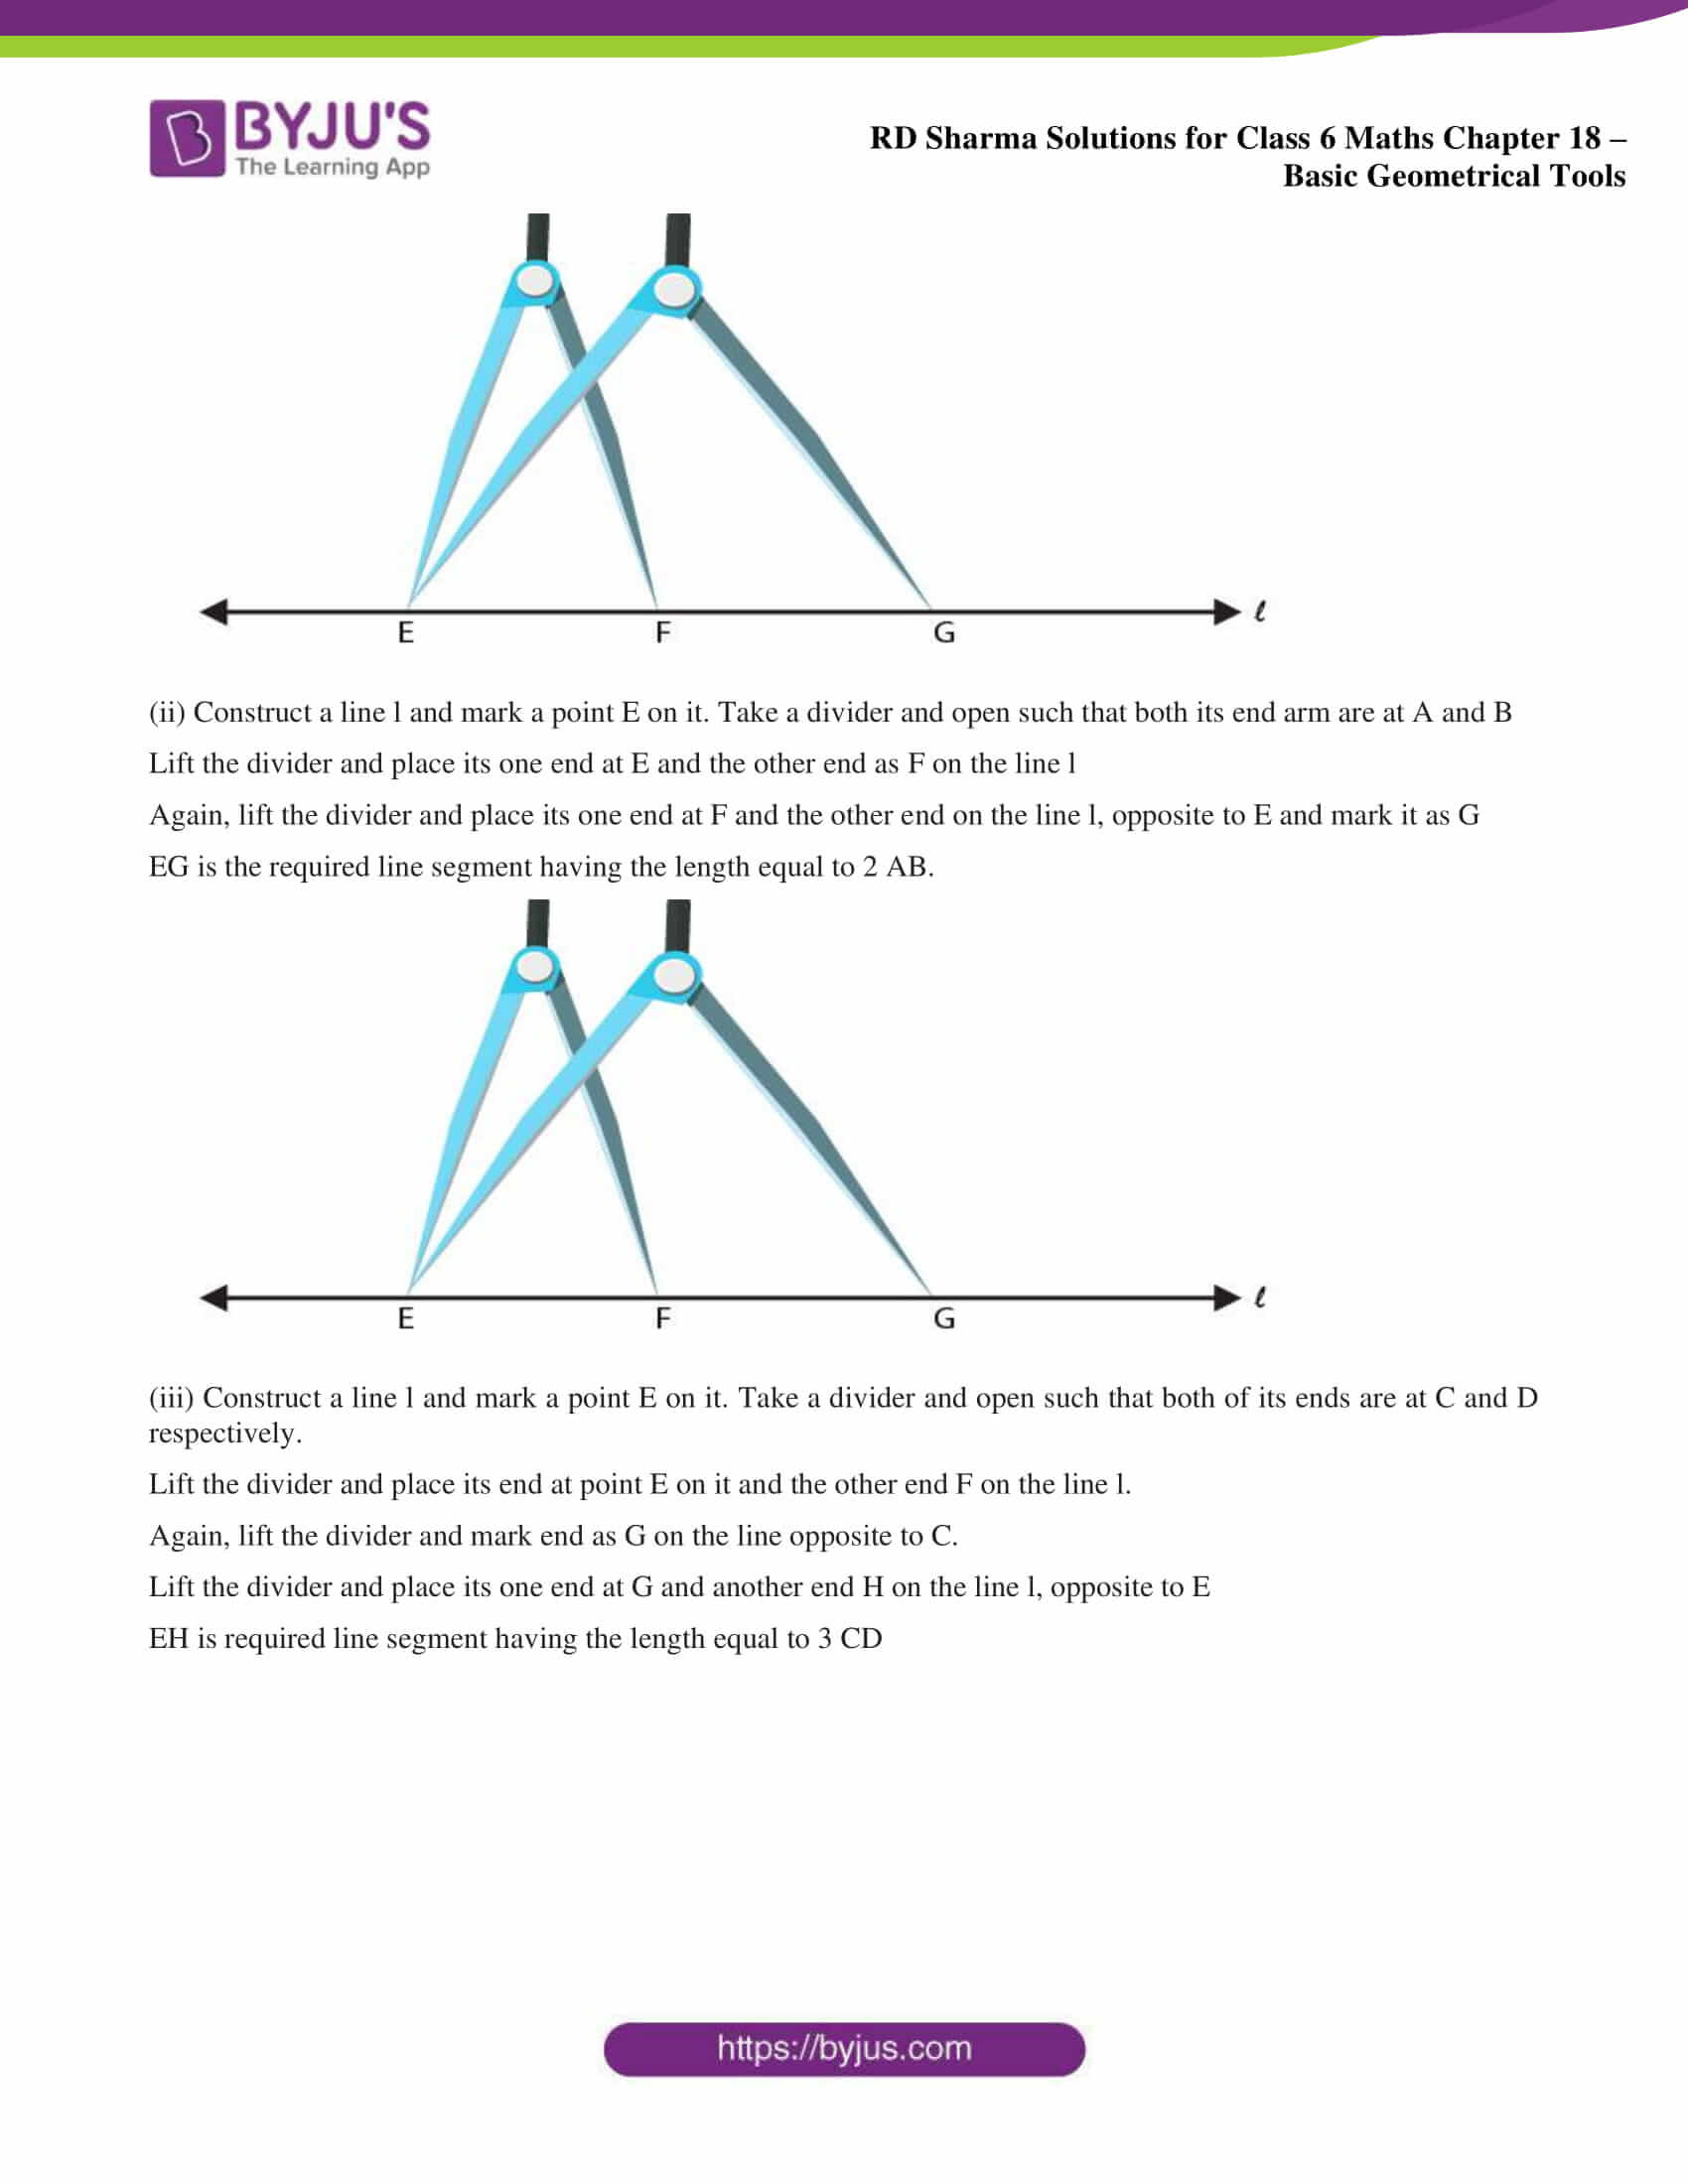 rd sharma solutions class 6 maths chapter 18